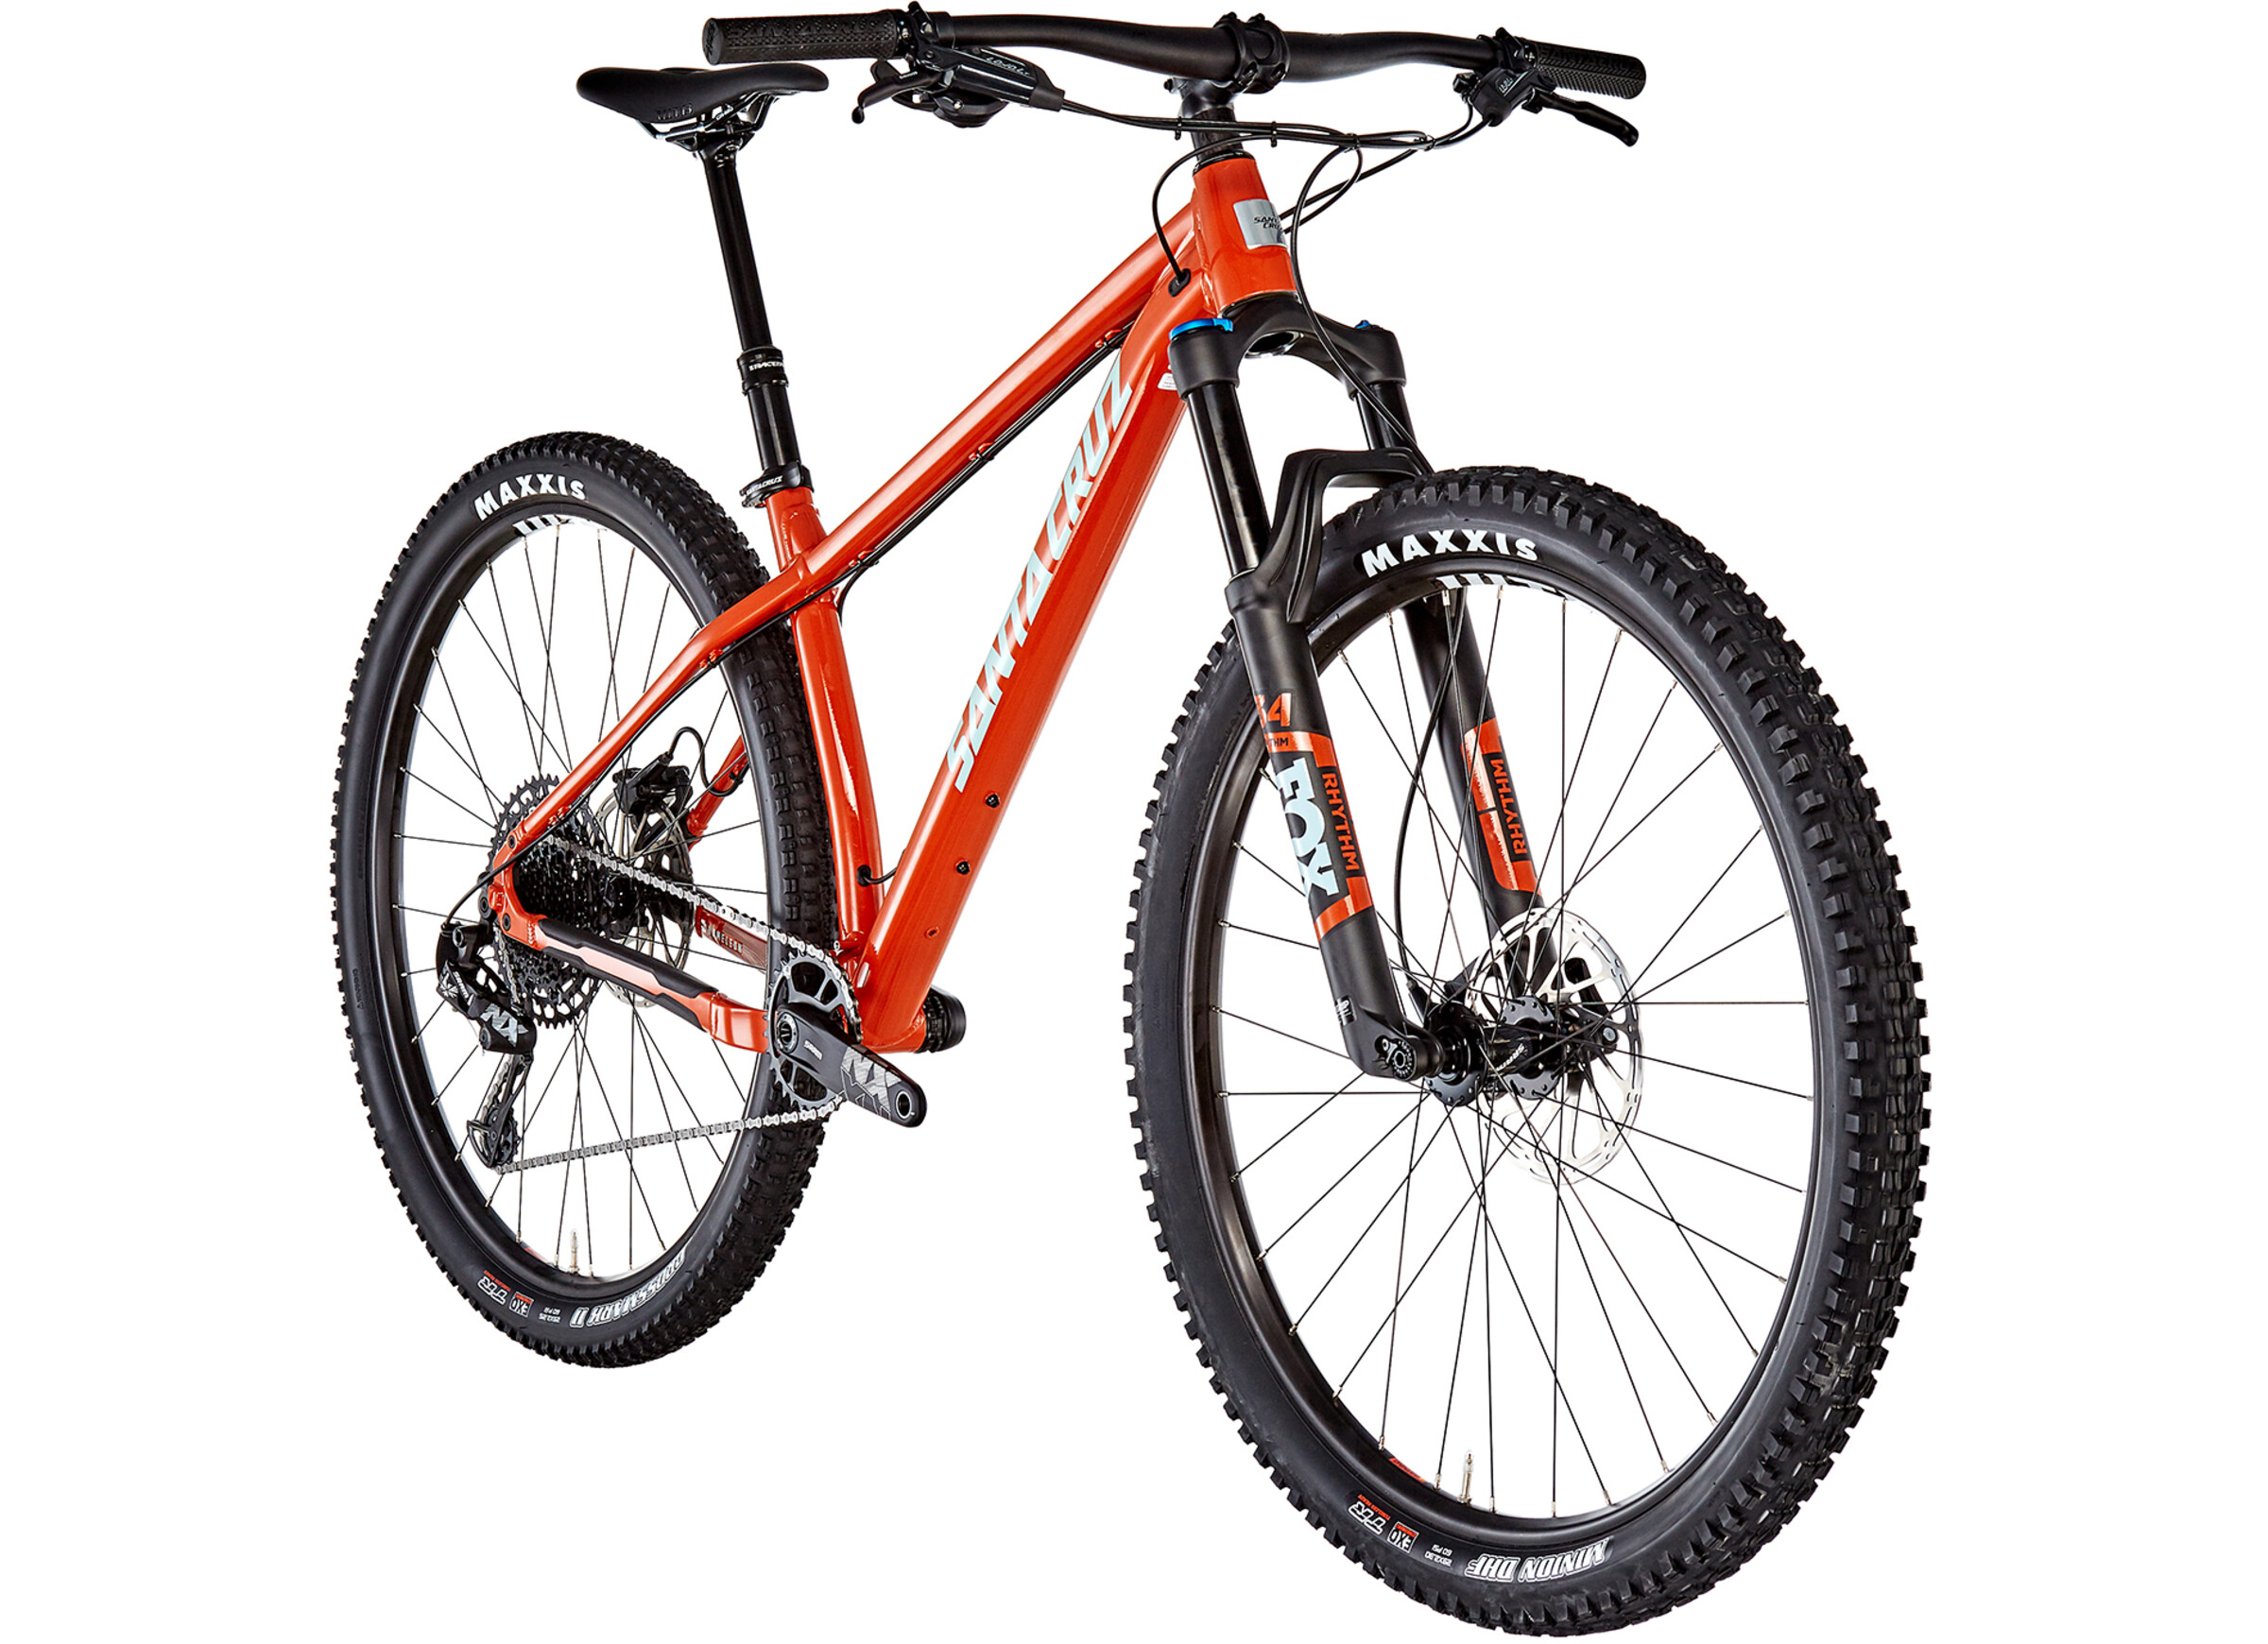 19ef66e863e Santa Cruz Chameleon 7 AL R-Kit Plus - VTT - orange - Boutique de ...